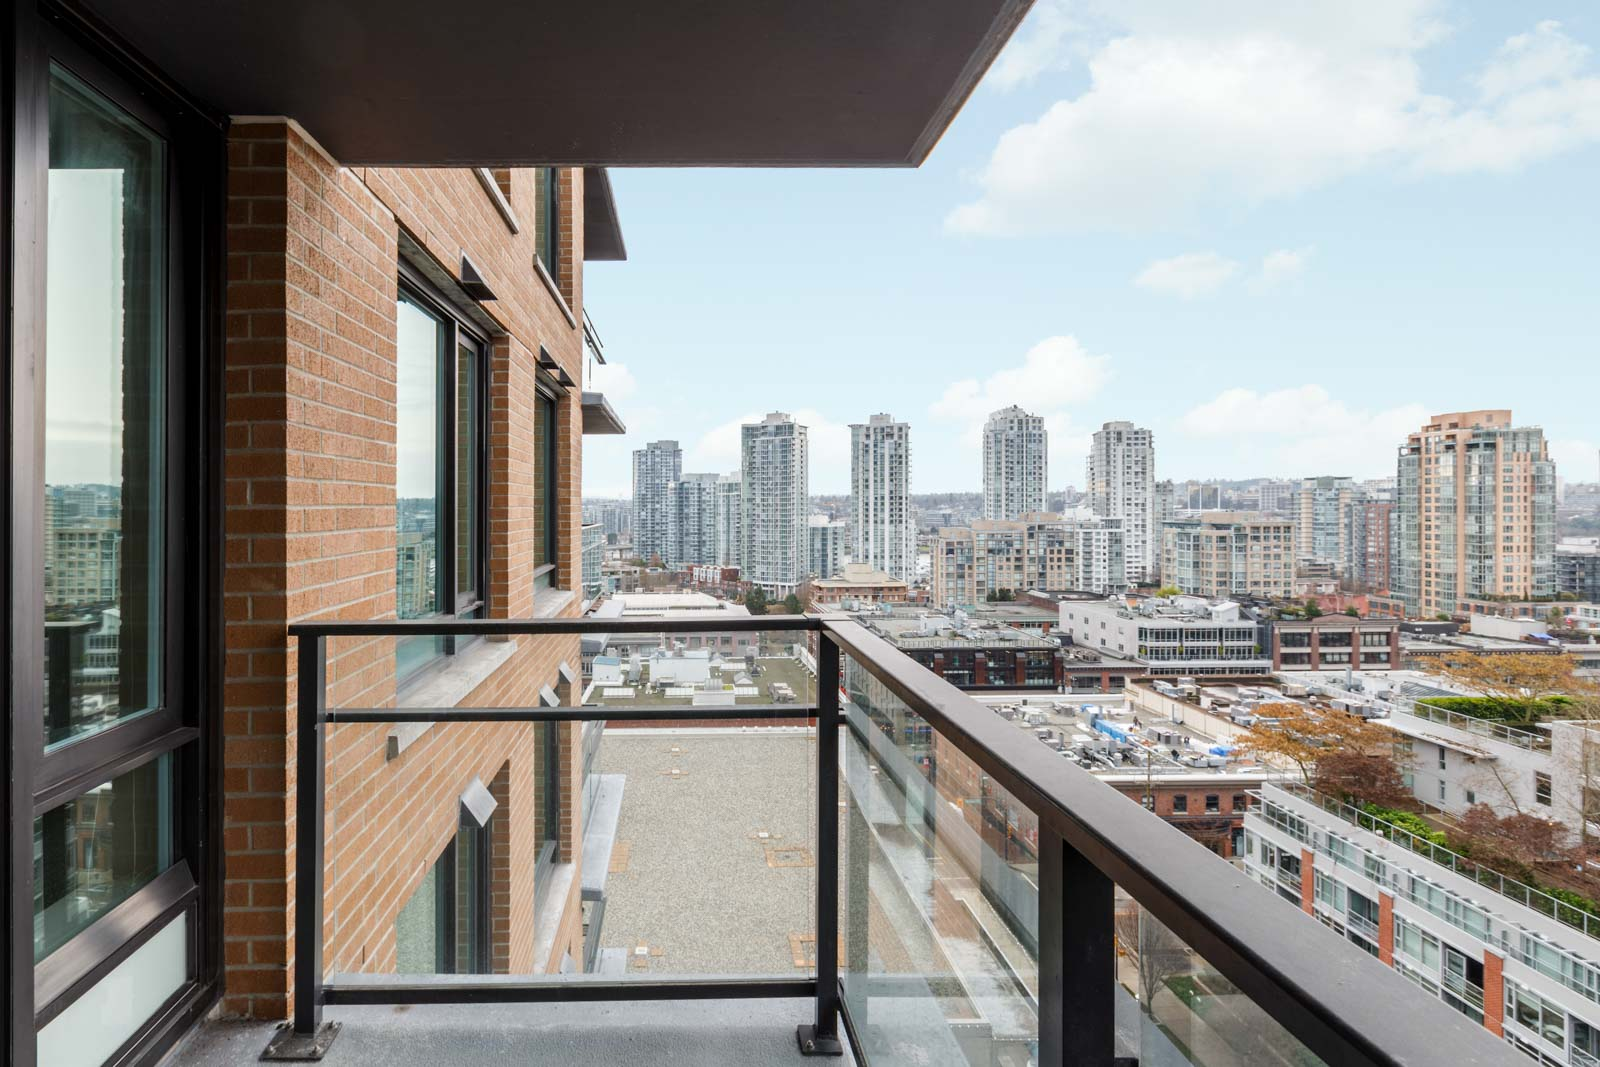 condo balcony with side of building on left and buildings and cloudy bright skies in the background